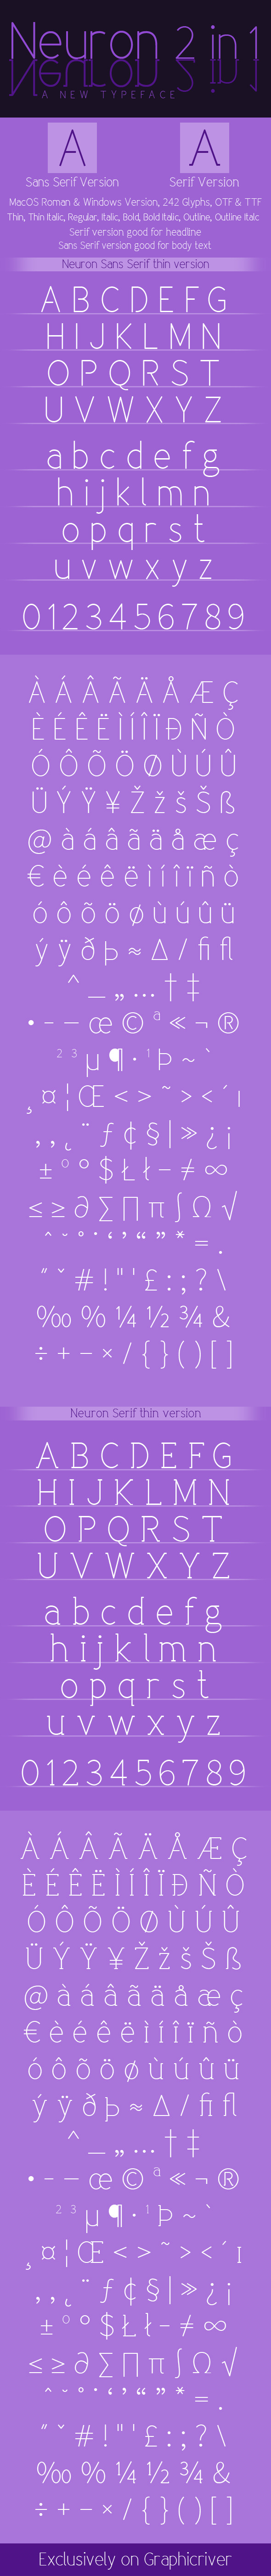 Neuron Font Family 2 in 1 - Fonts